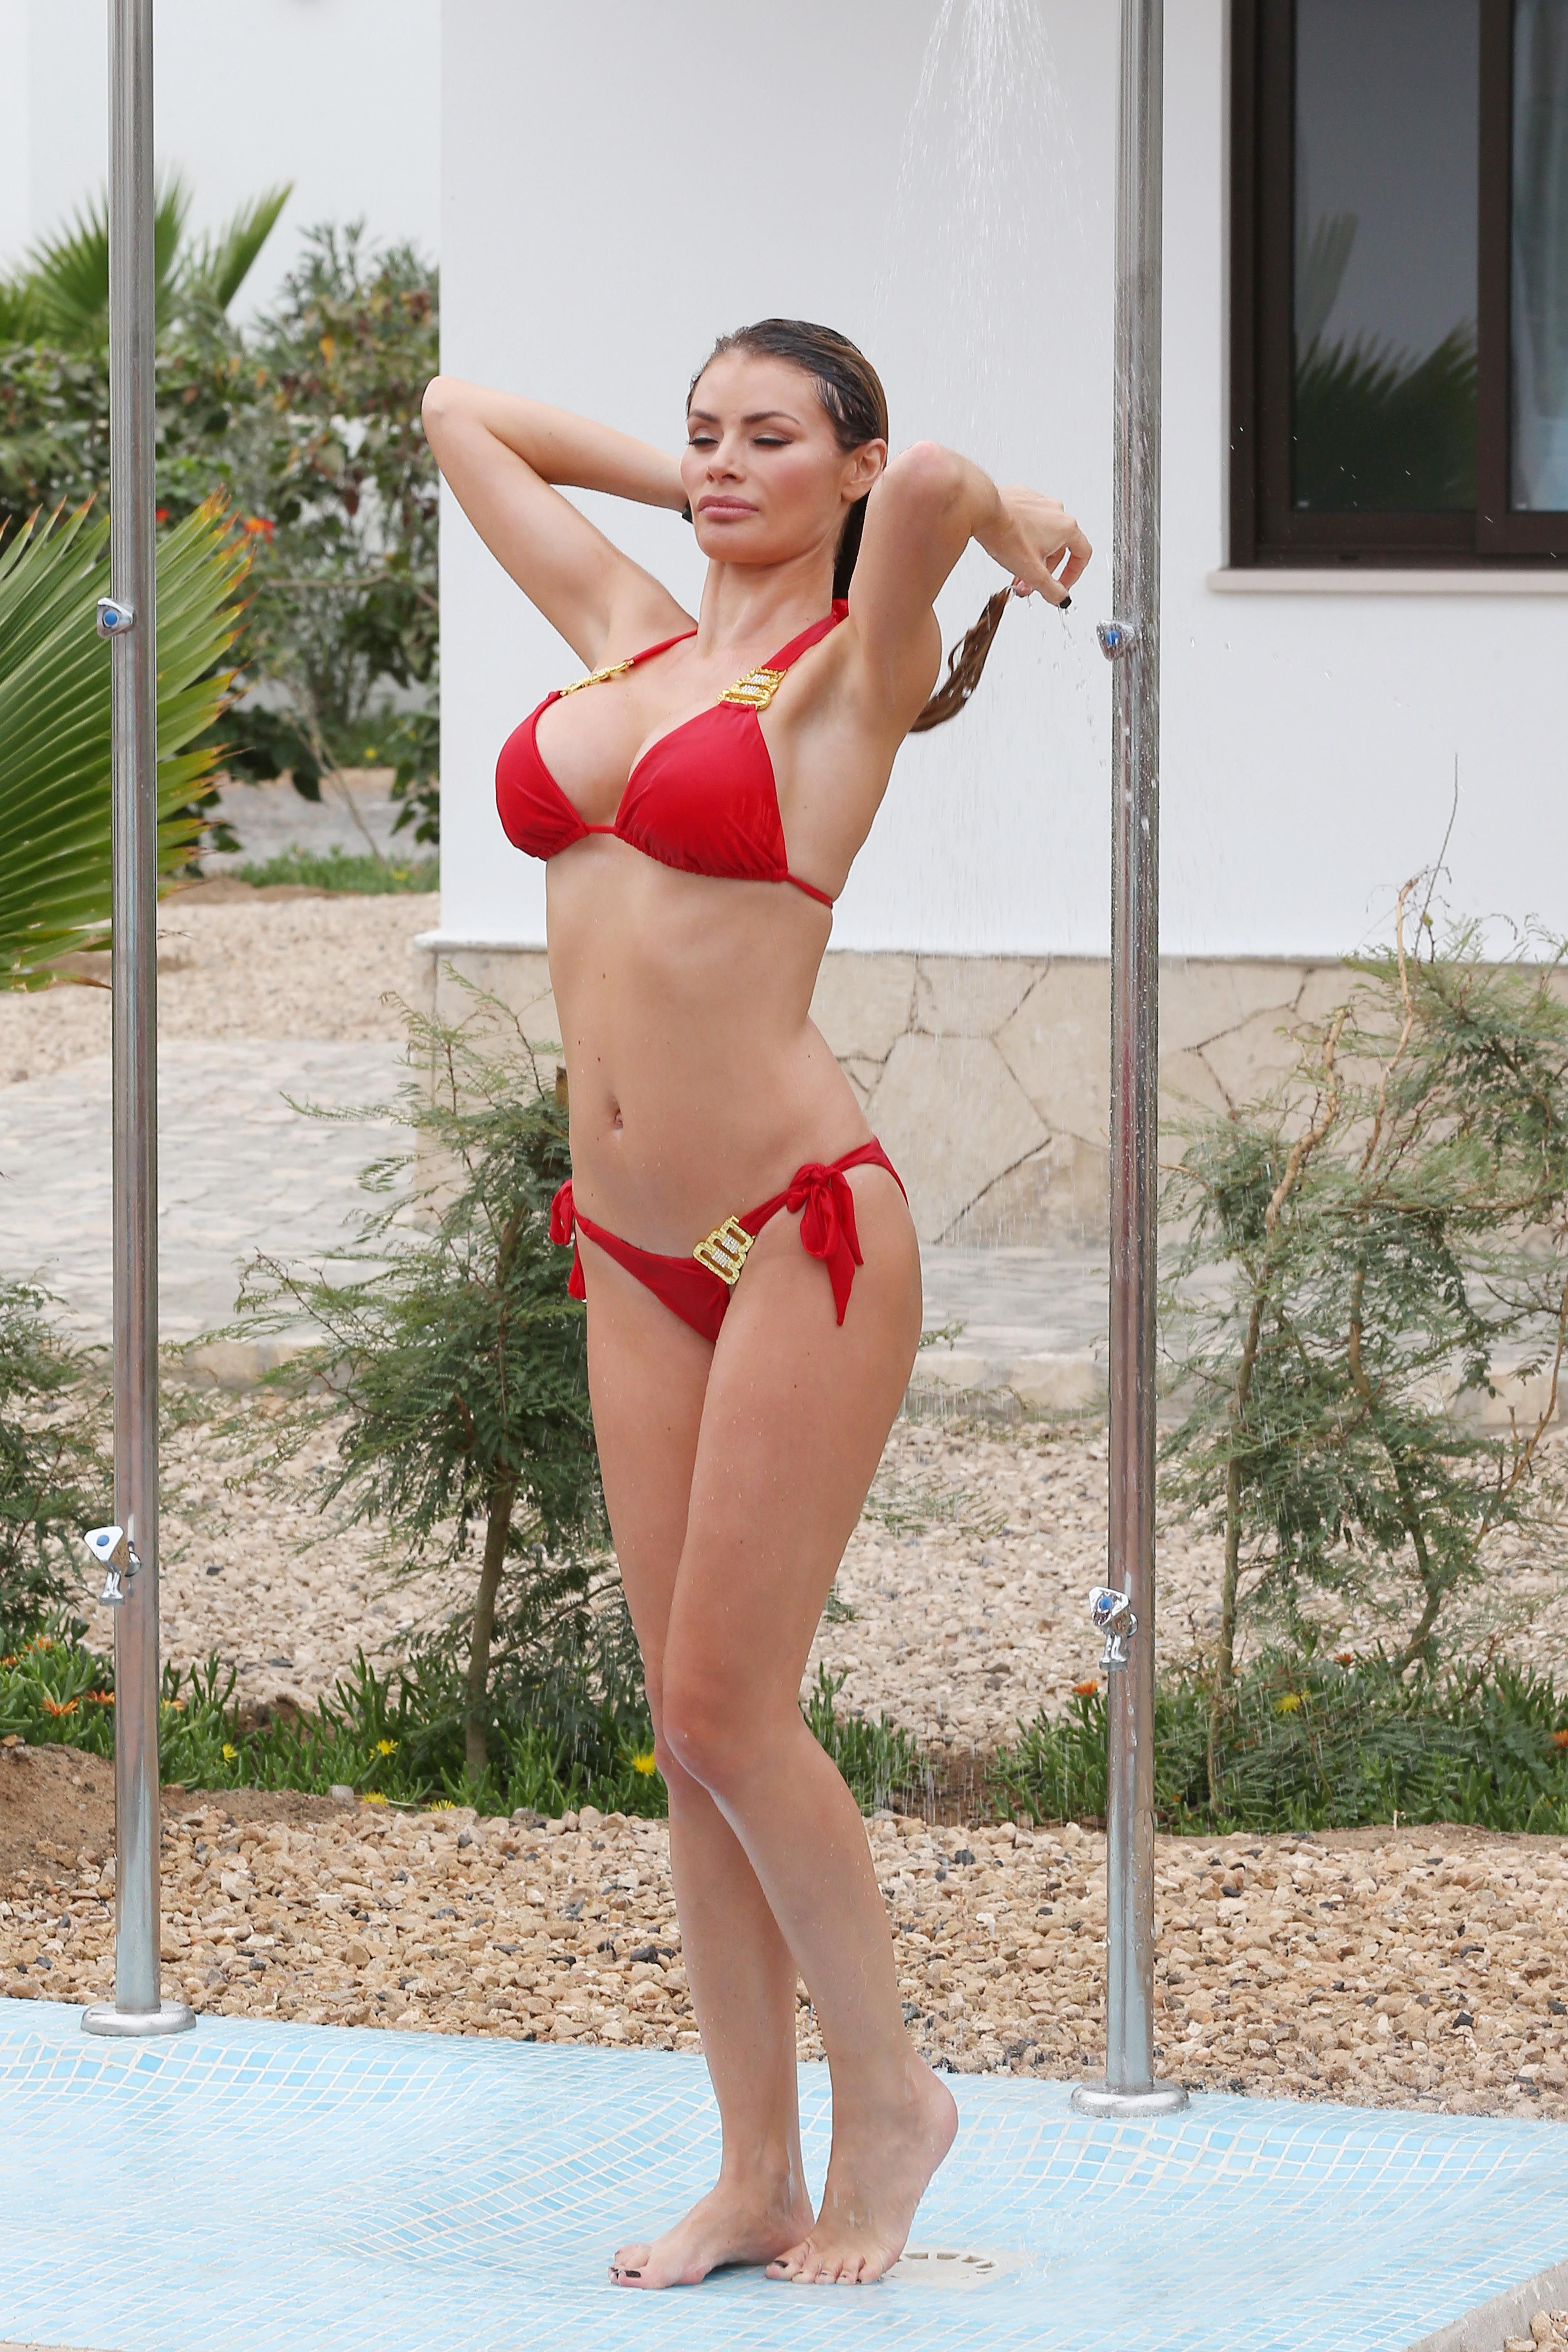 Chloe Sims photo gallery - 70 best Chloe Sims pics | Celebs-Place.com